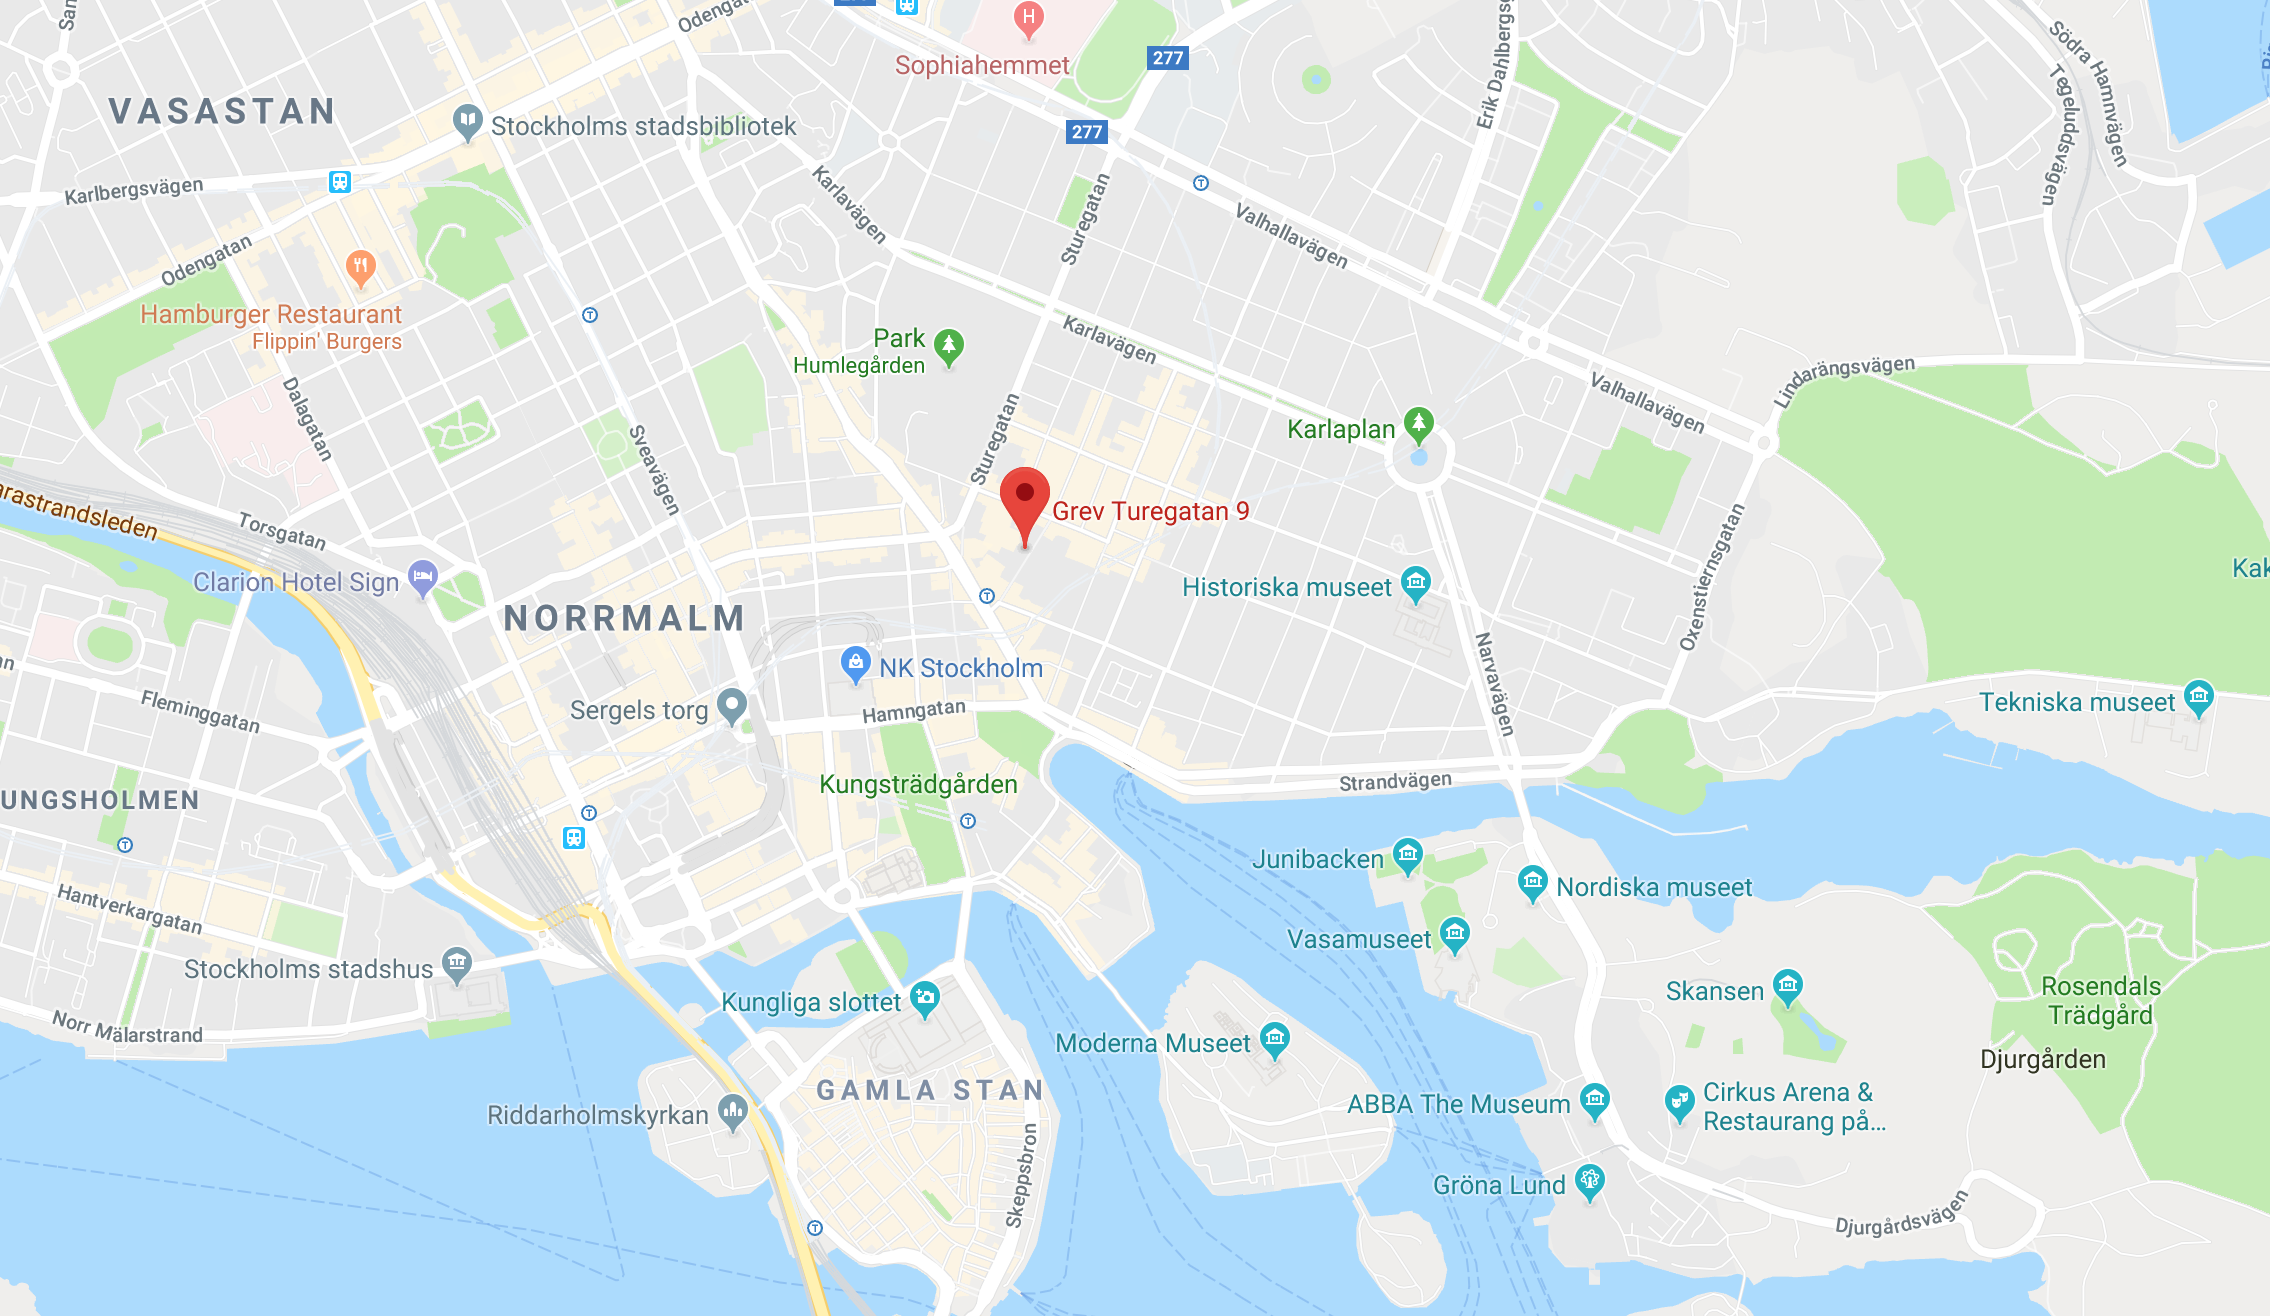 Google Map of Stockholm showing the Plotagon office location